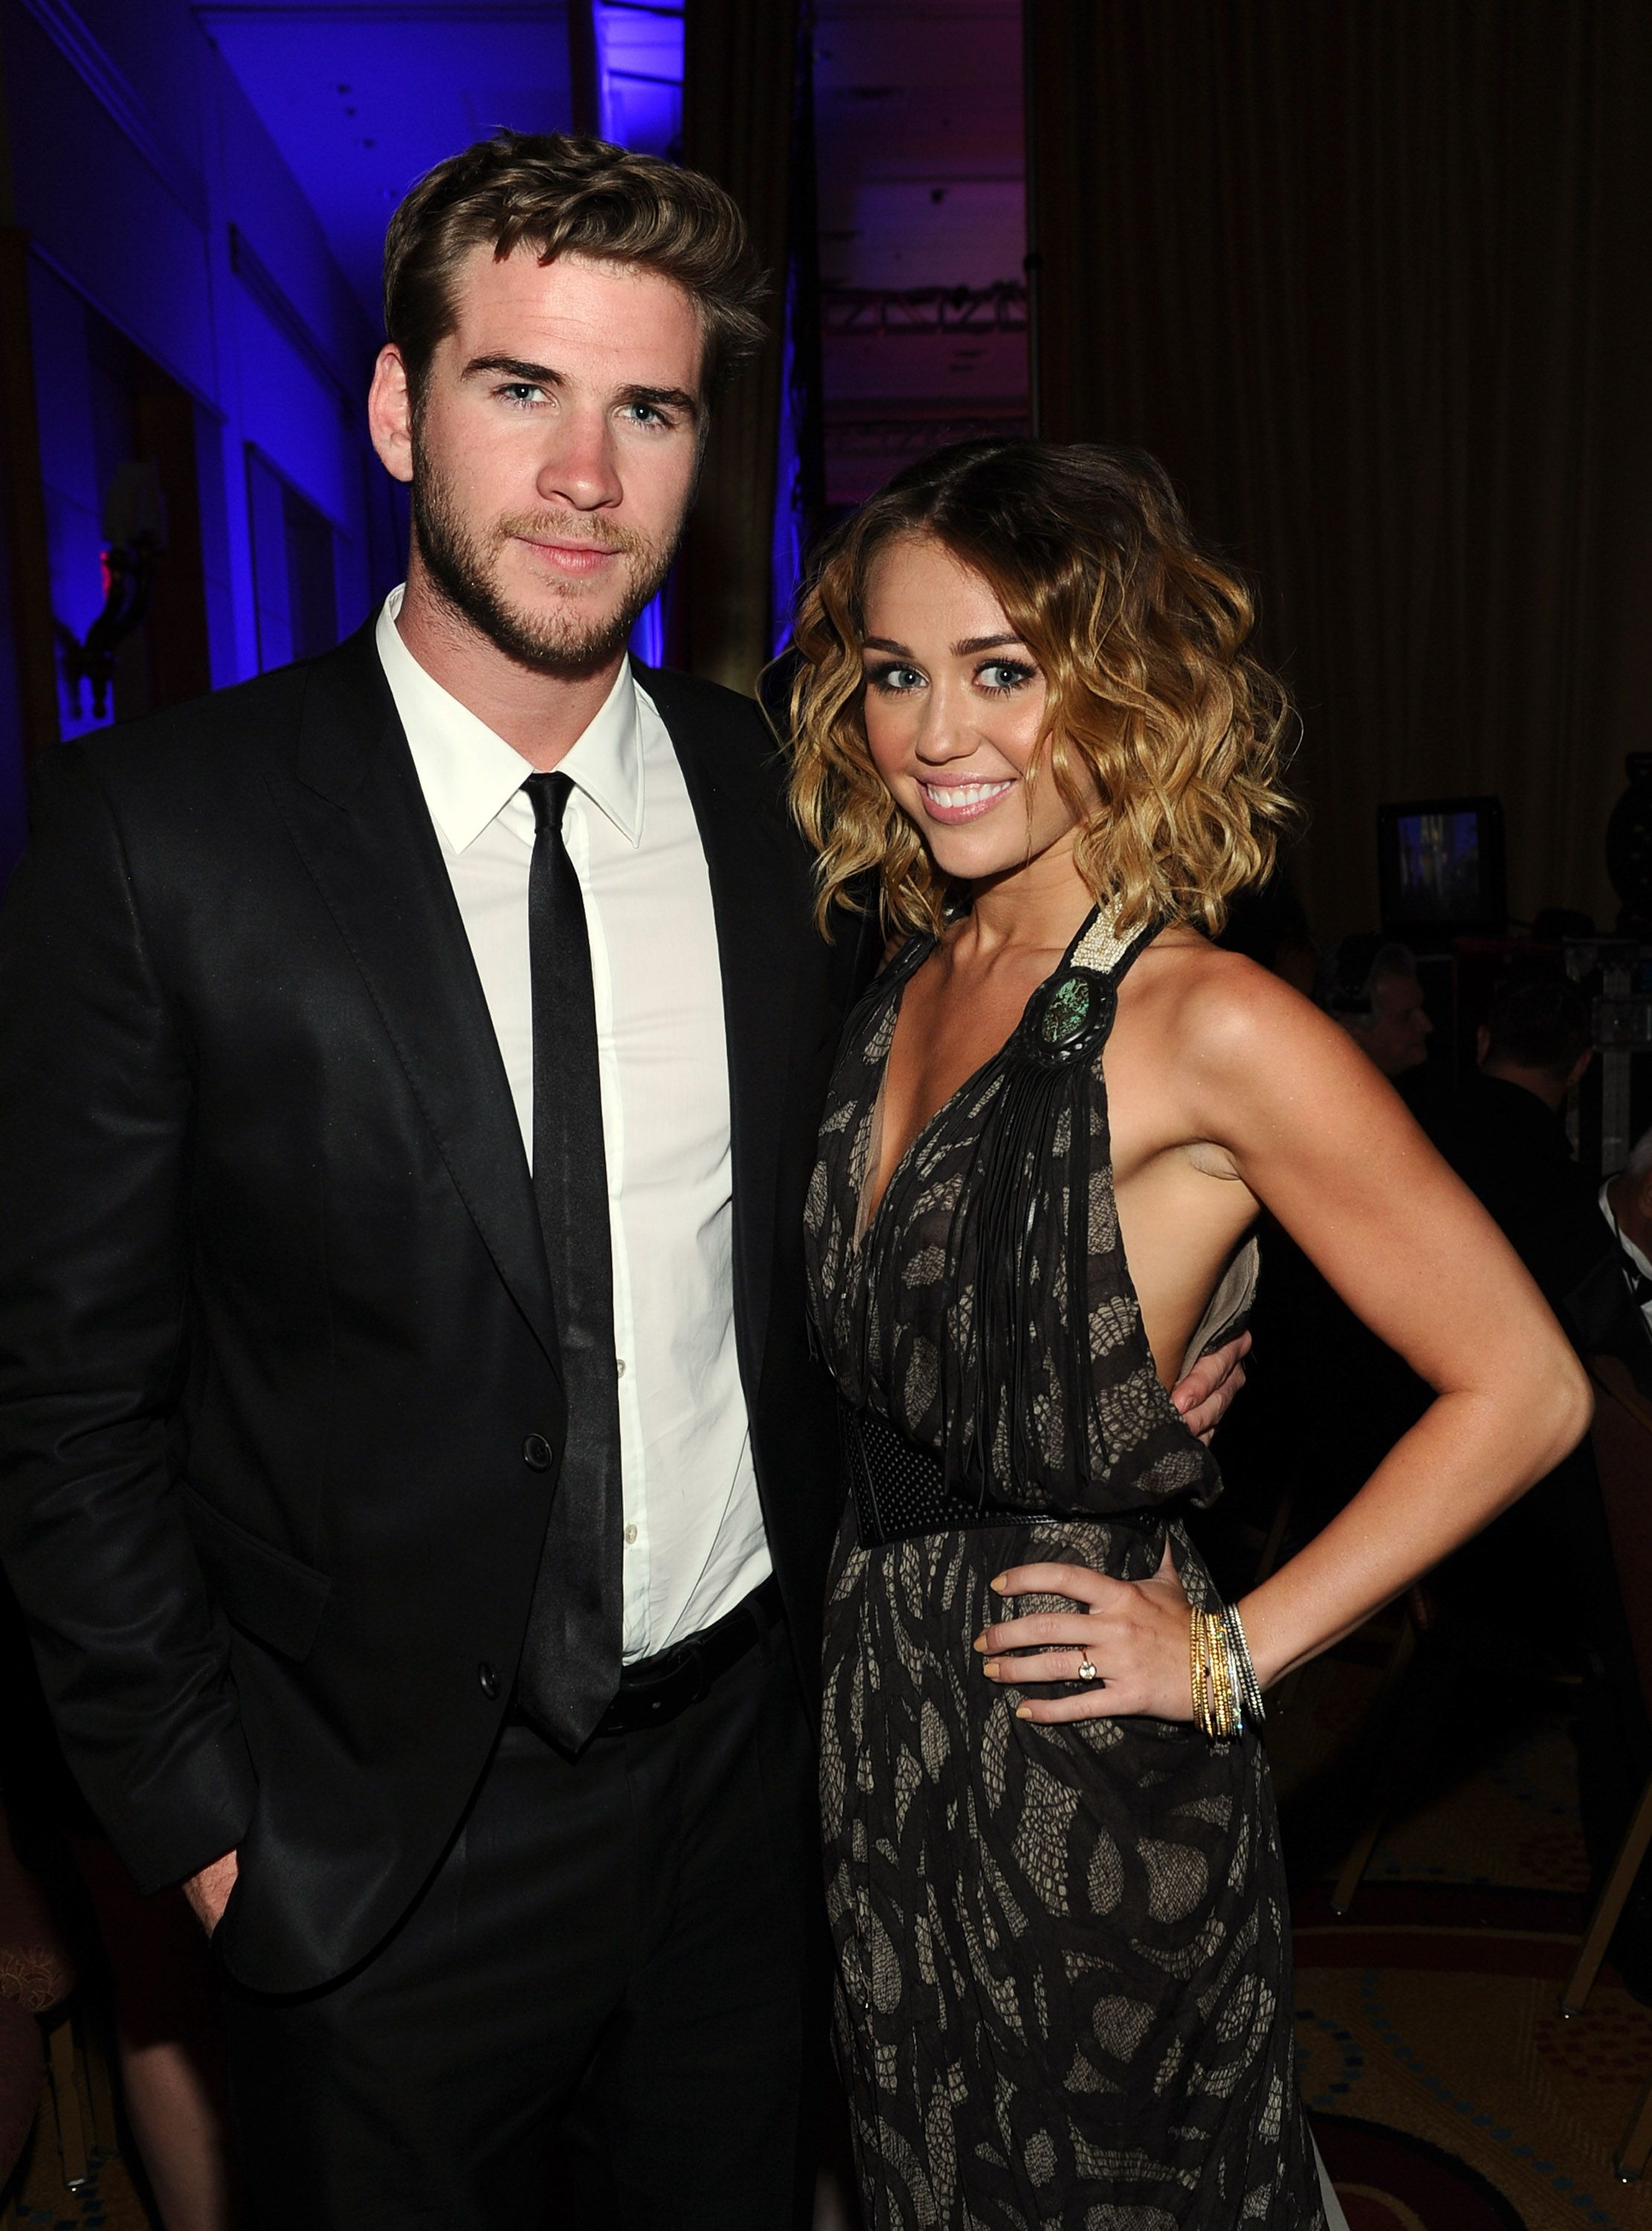 Who is miley cyrus ex dating now